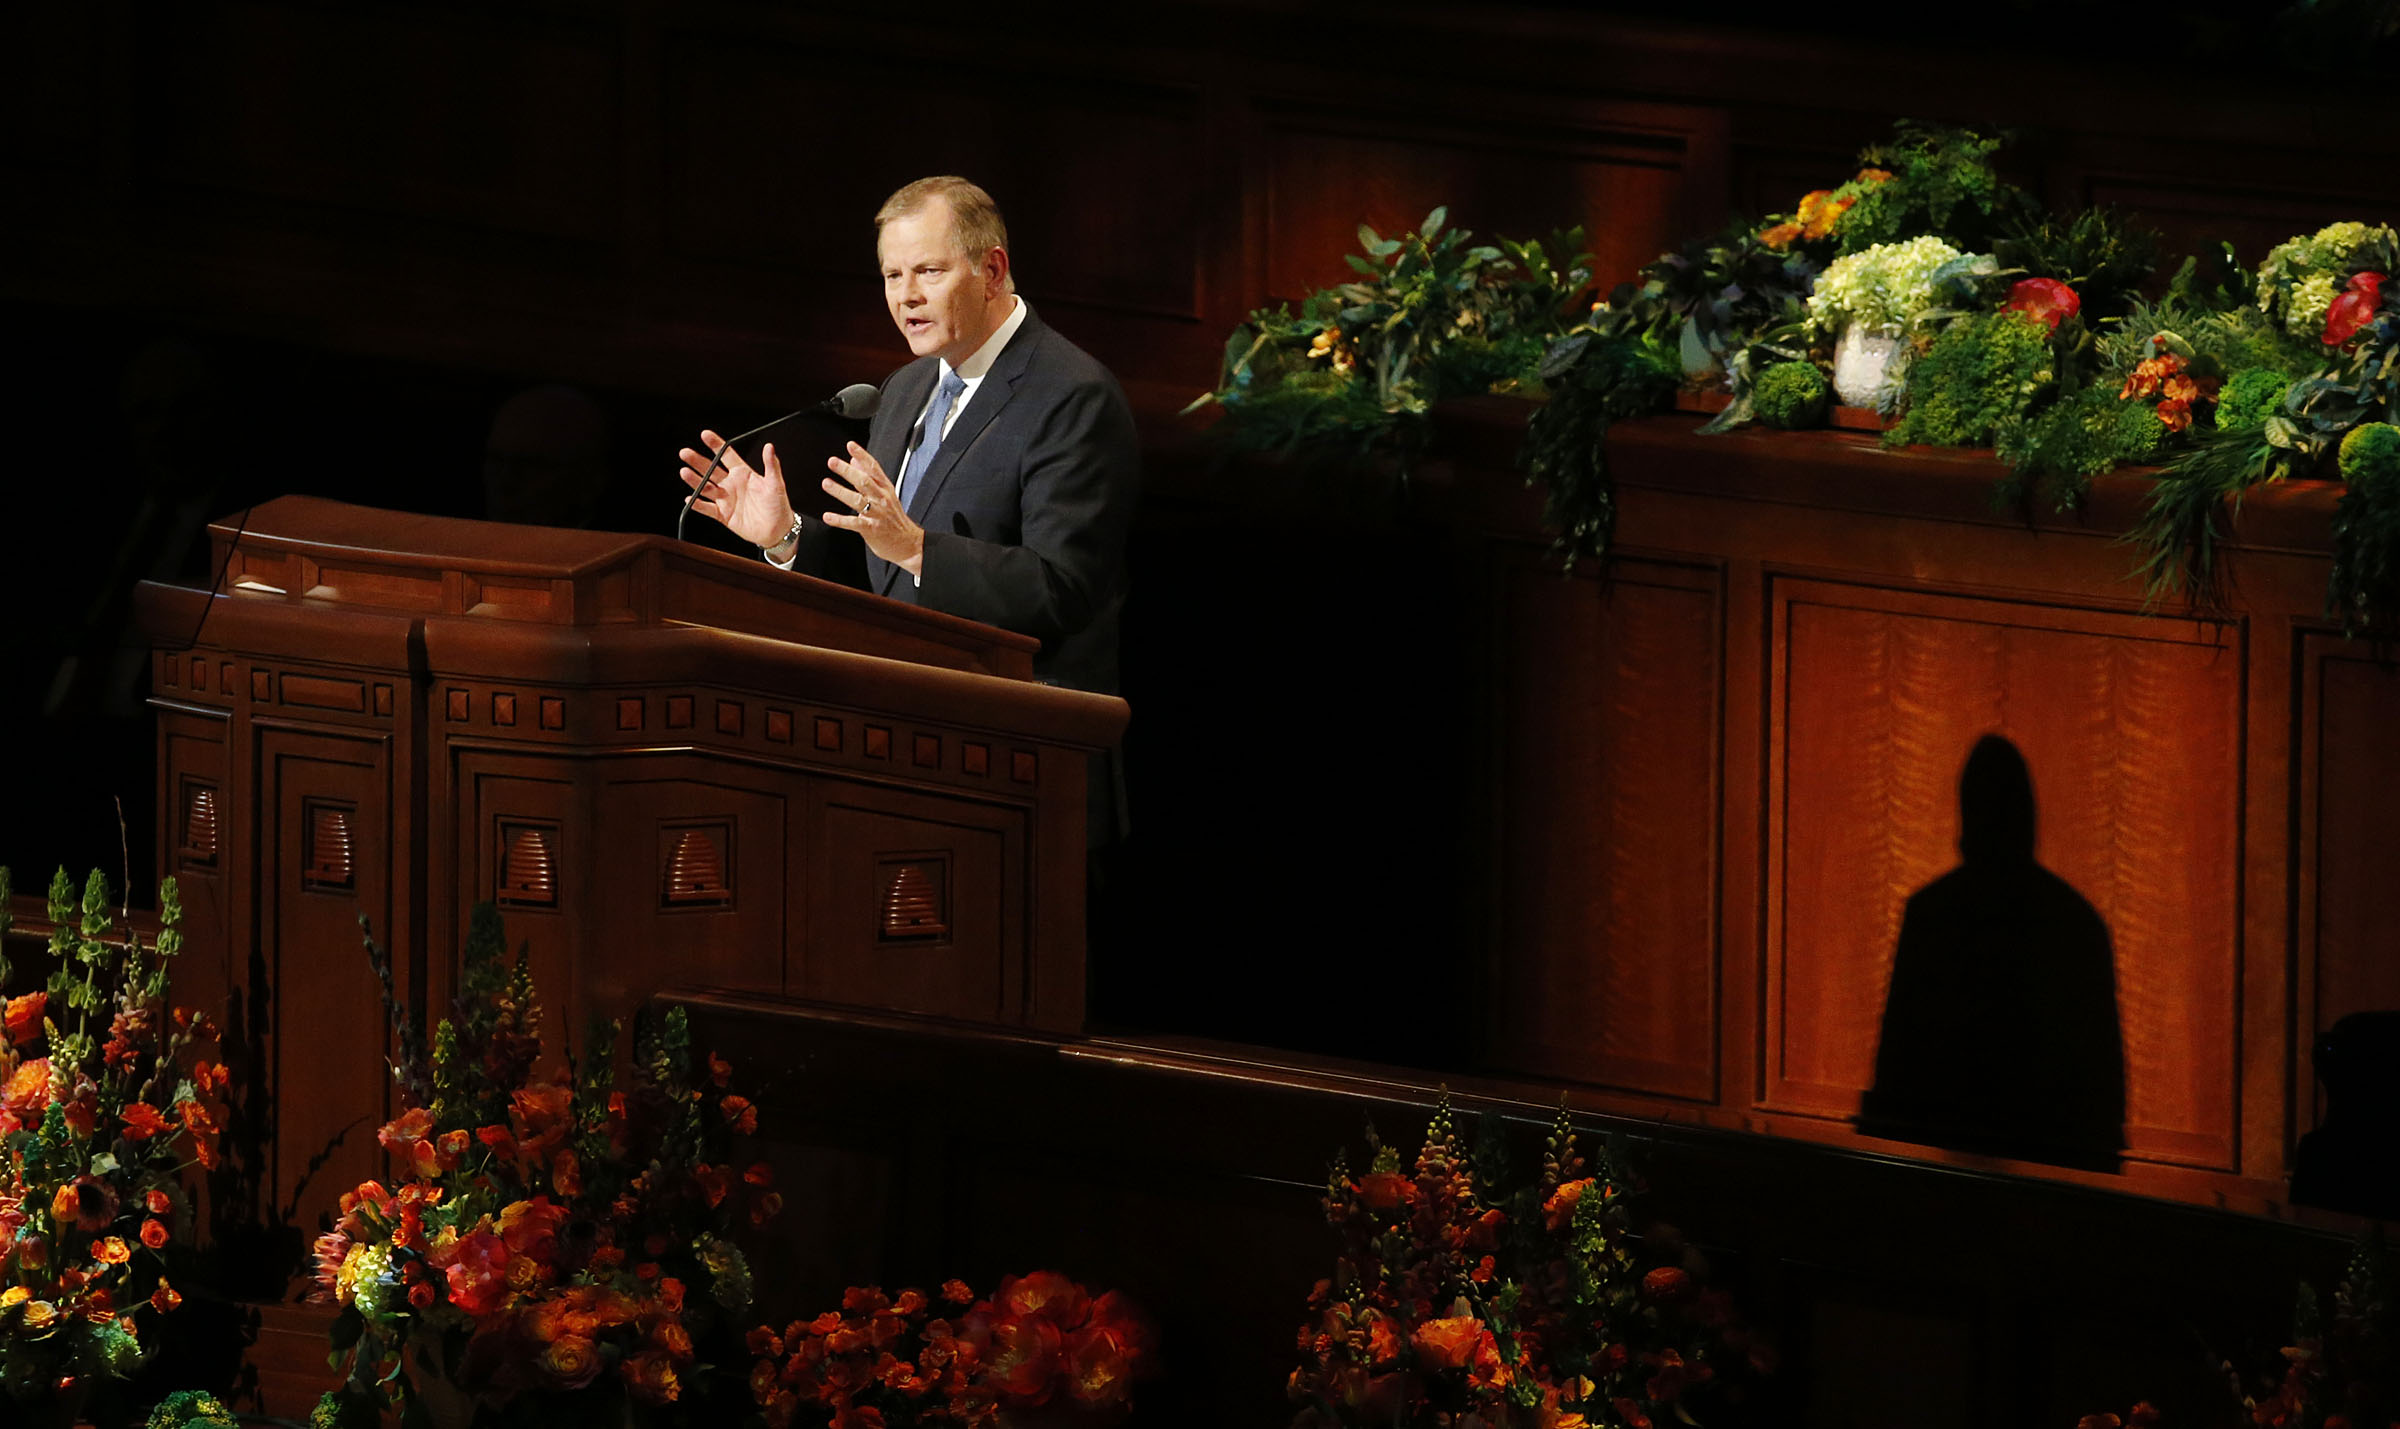 Elder Gary E. Stevenson of the Quorum of the Twelve Apostles speaks during the priesthood session of the 189th Annual General Conference of The Church of Jesus Christ of Latter-day Saints in the Conference Center in Salt Lake City on Saturday, April 6, 2019.